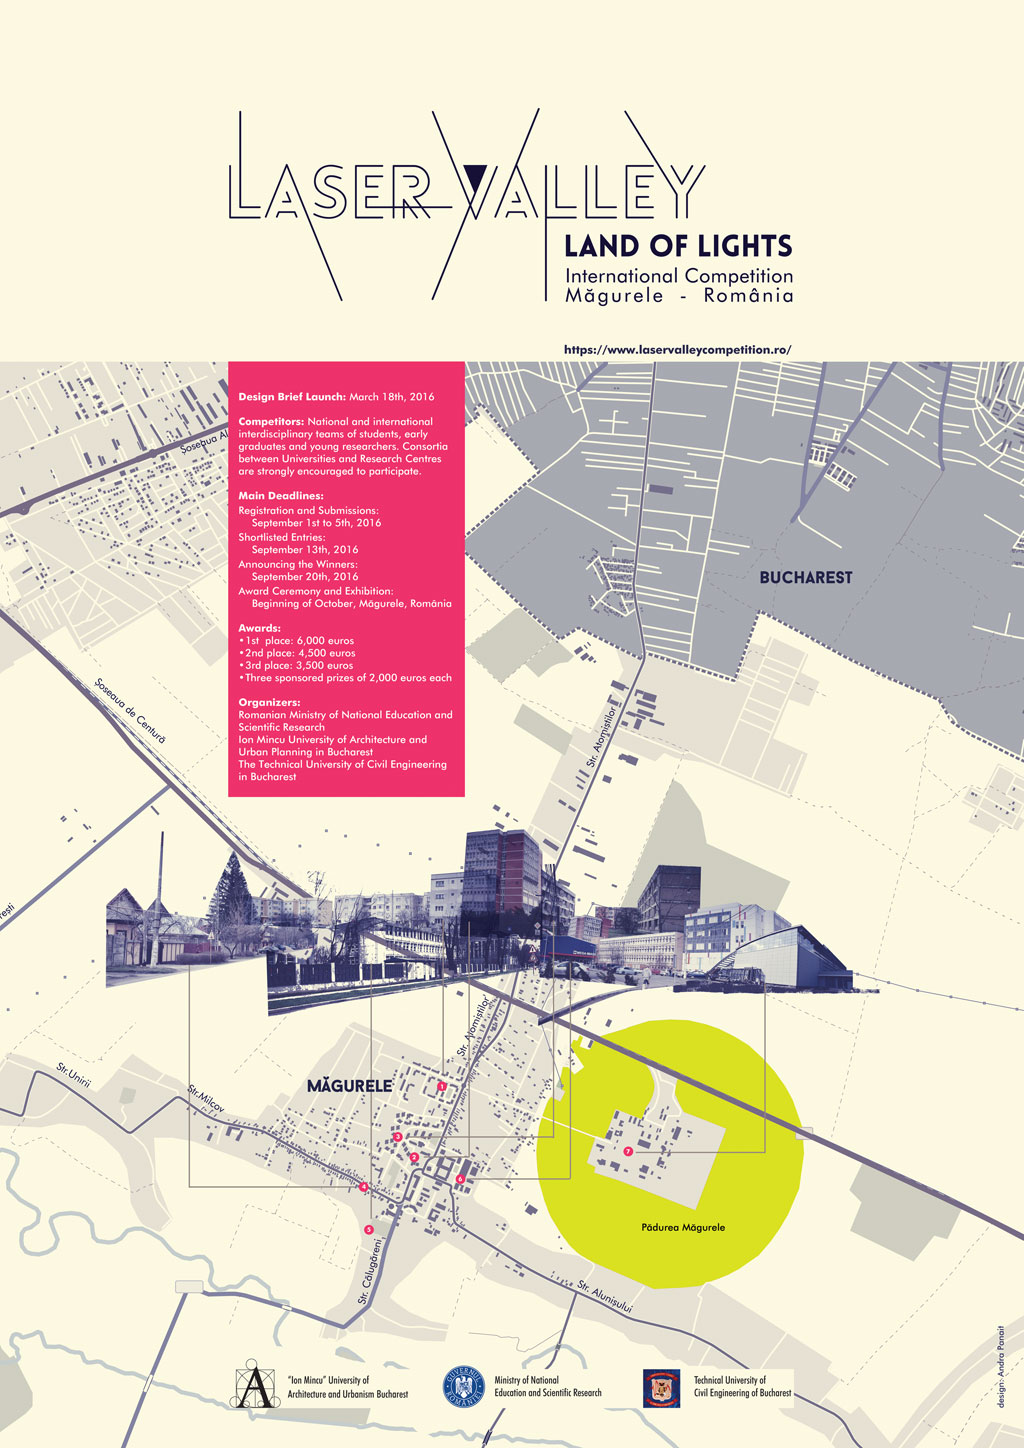 02-laser-valley-land-of-lights-poster